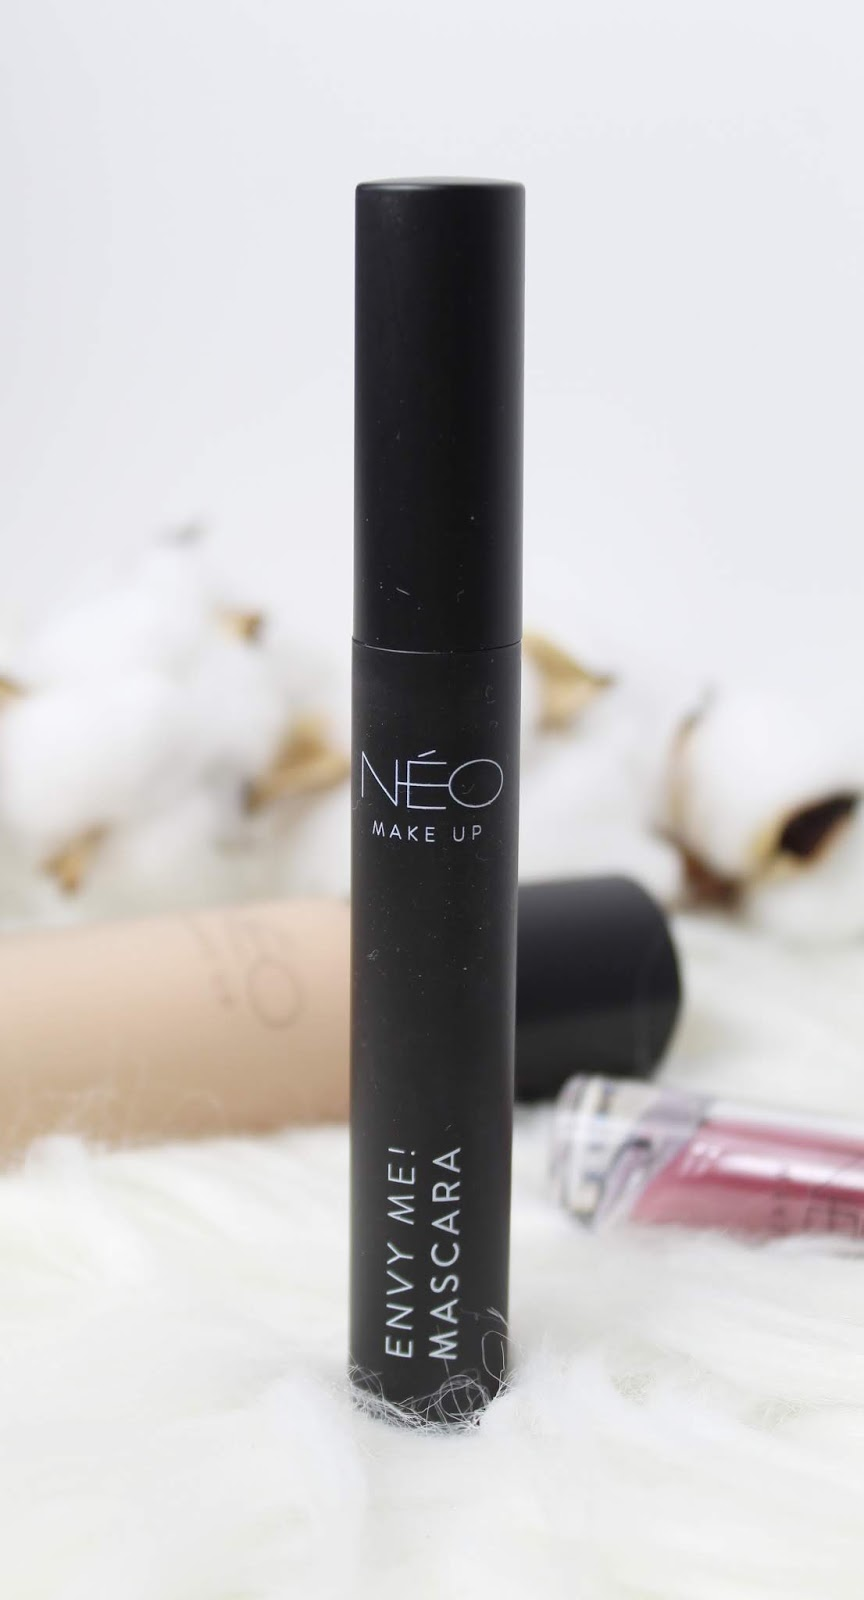 NEO Make Up Mascara All in One ENVY ME!